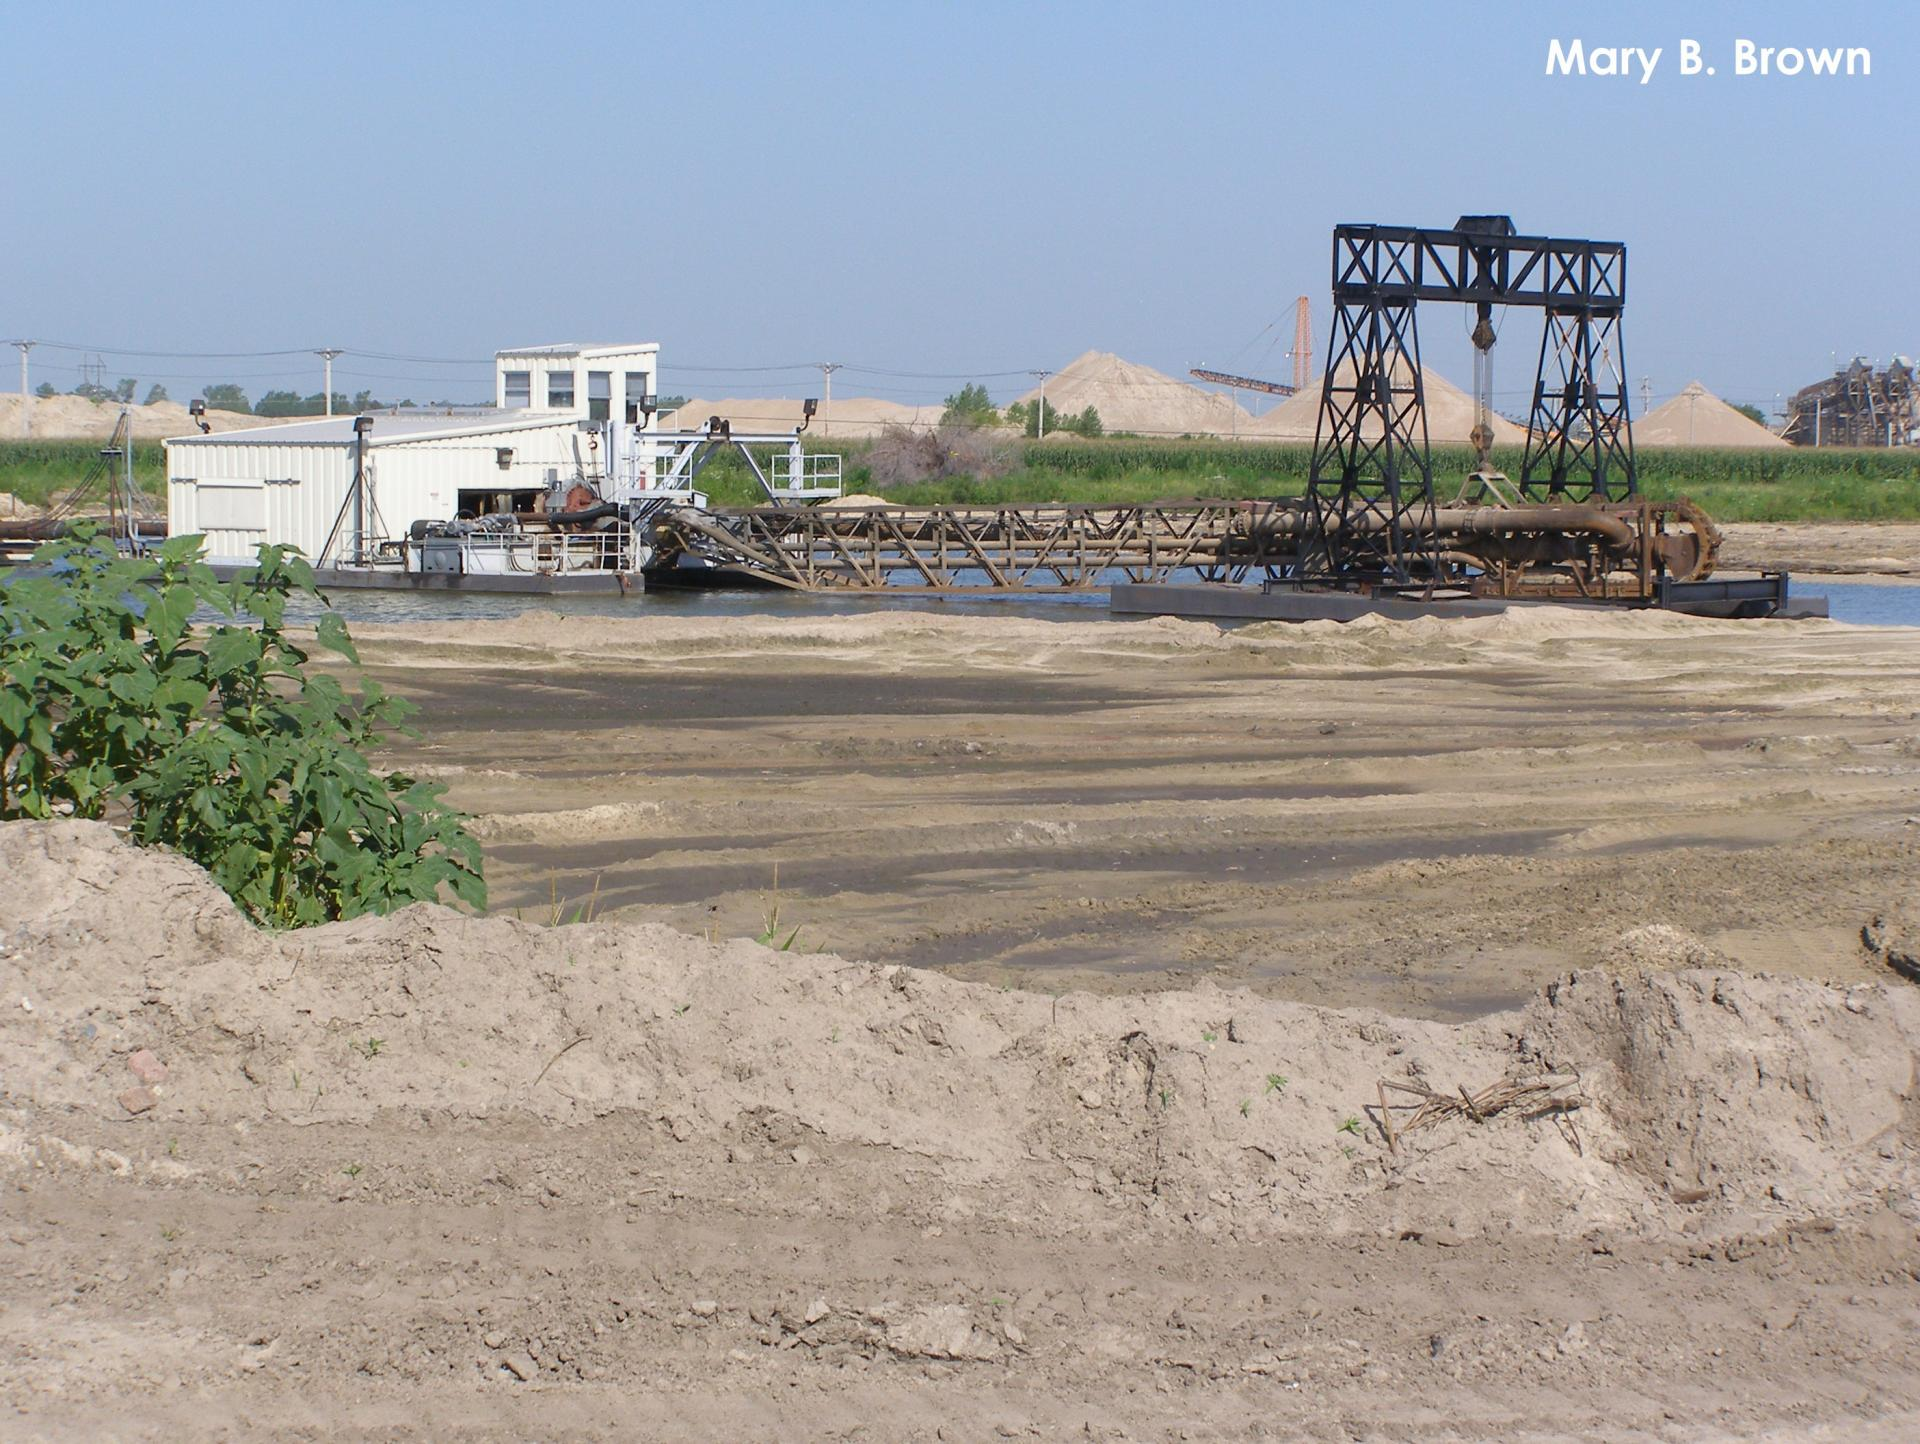 A dredge at a sand and gravel mine